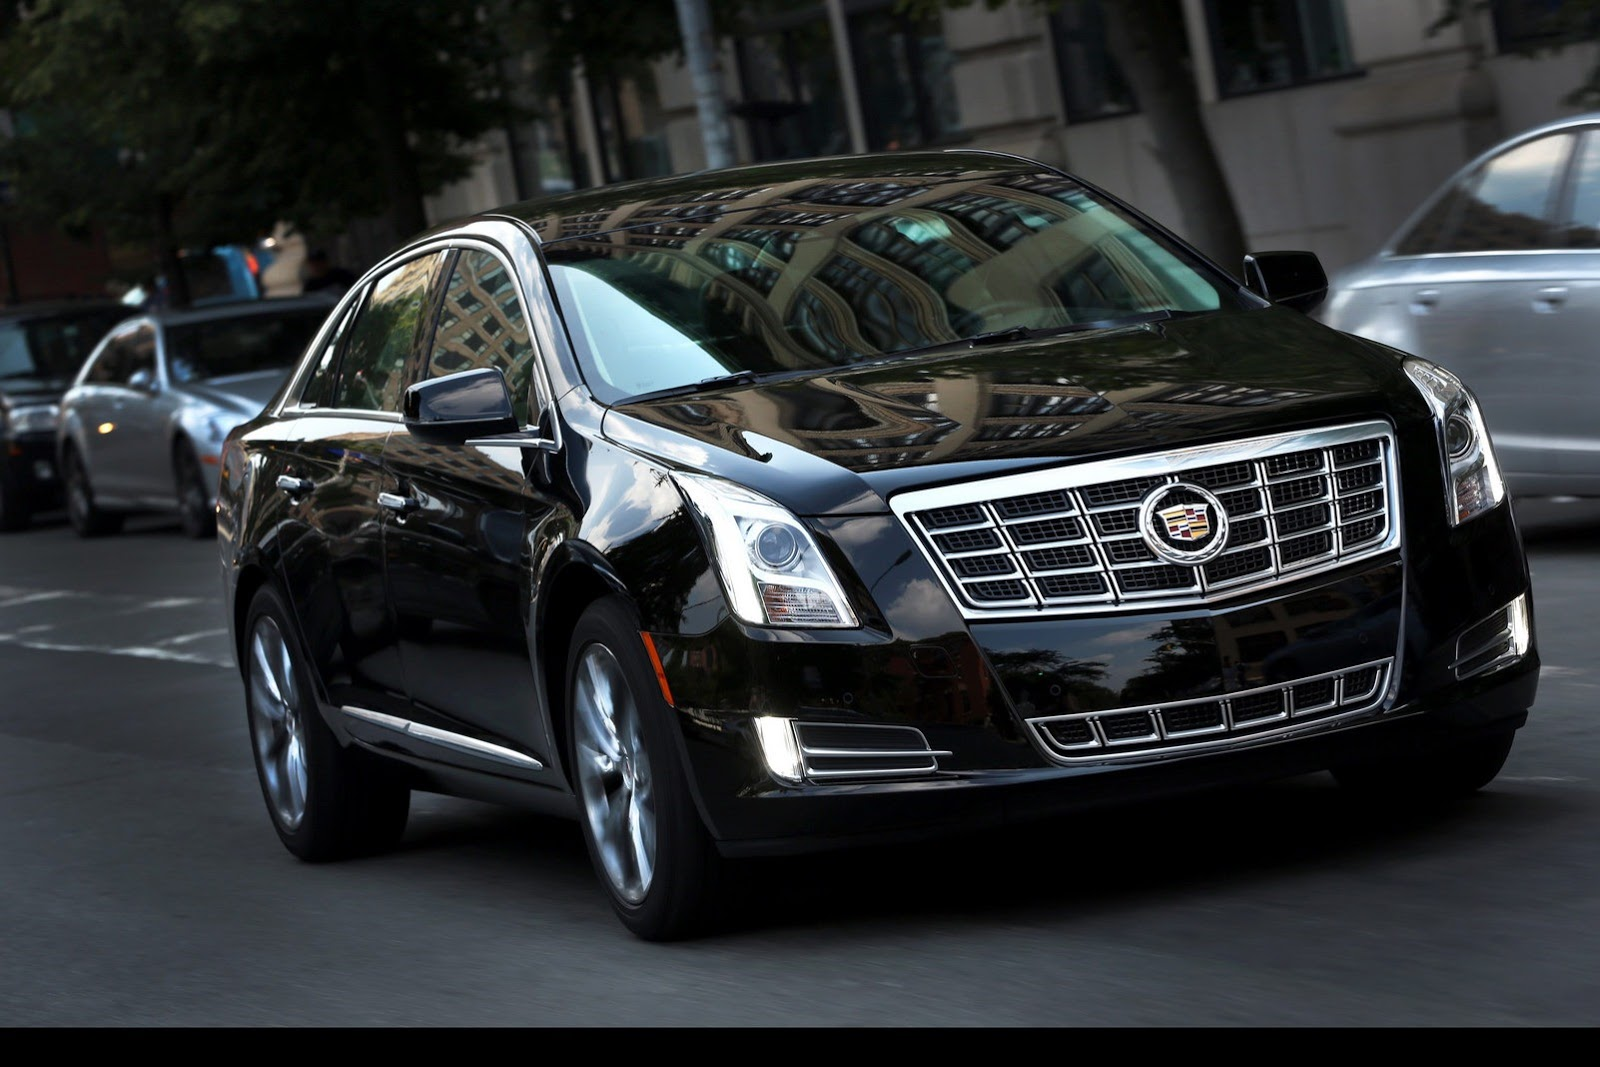 Mapp The V I Code Authorizes Me One Brand New Cadillac Per Each